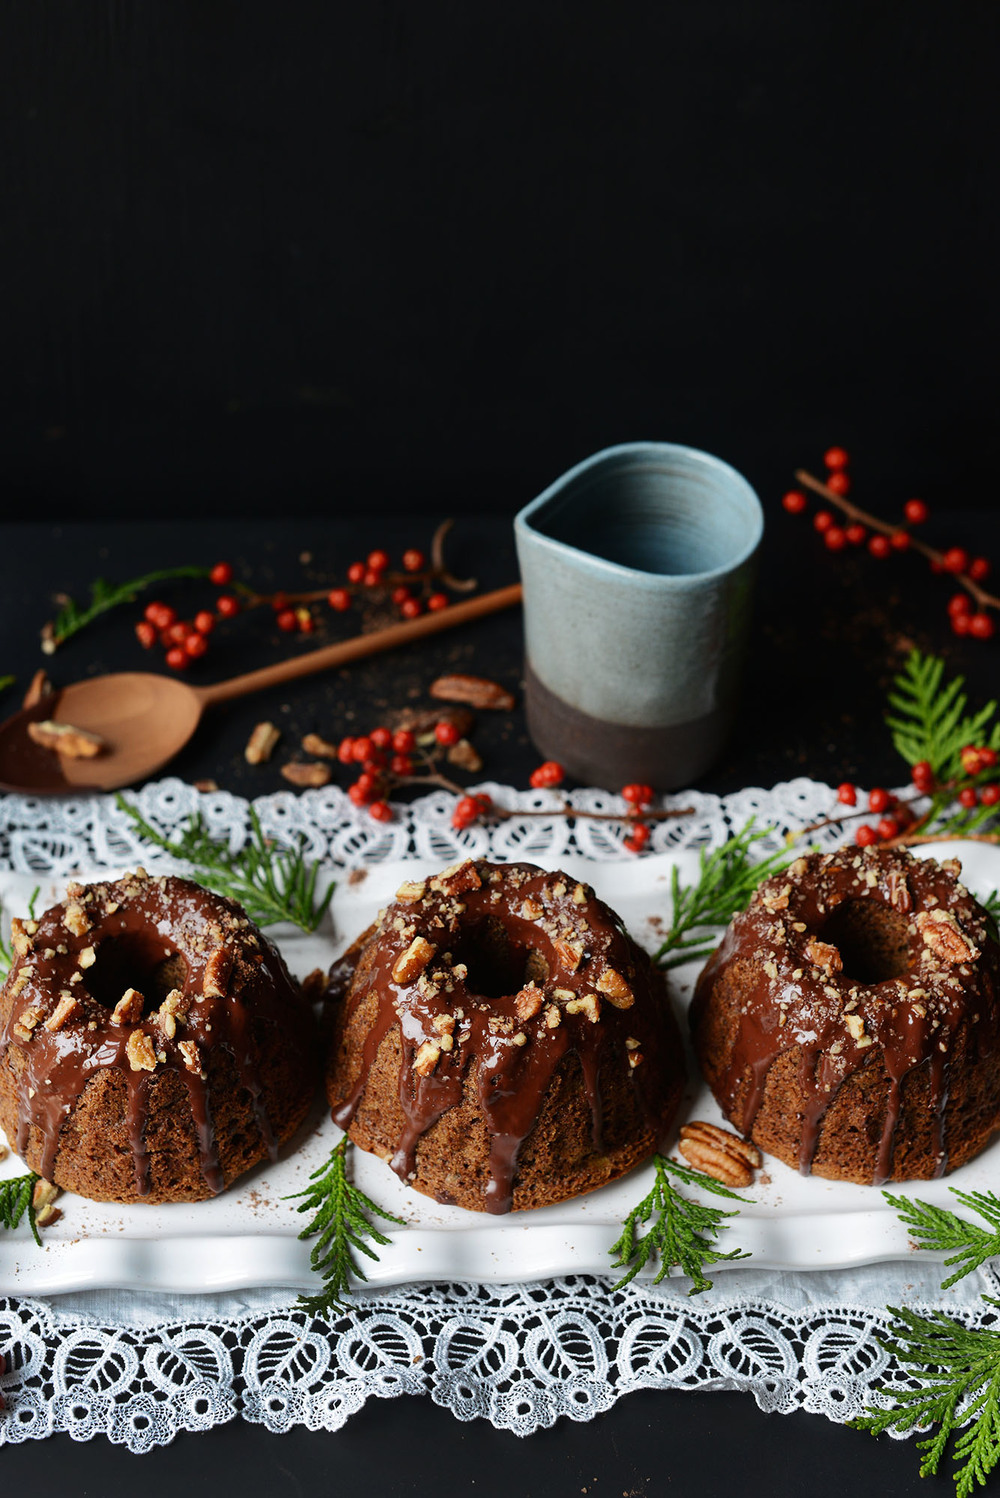 Recipe: Vegan Banana-Buckwheat Pecan Mini Bundts with Chocolate Drizzle by Fare Isle